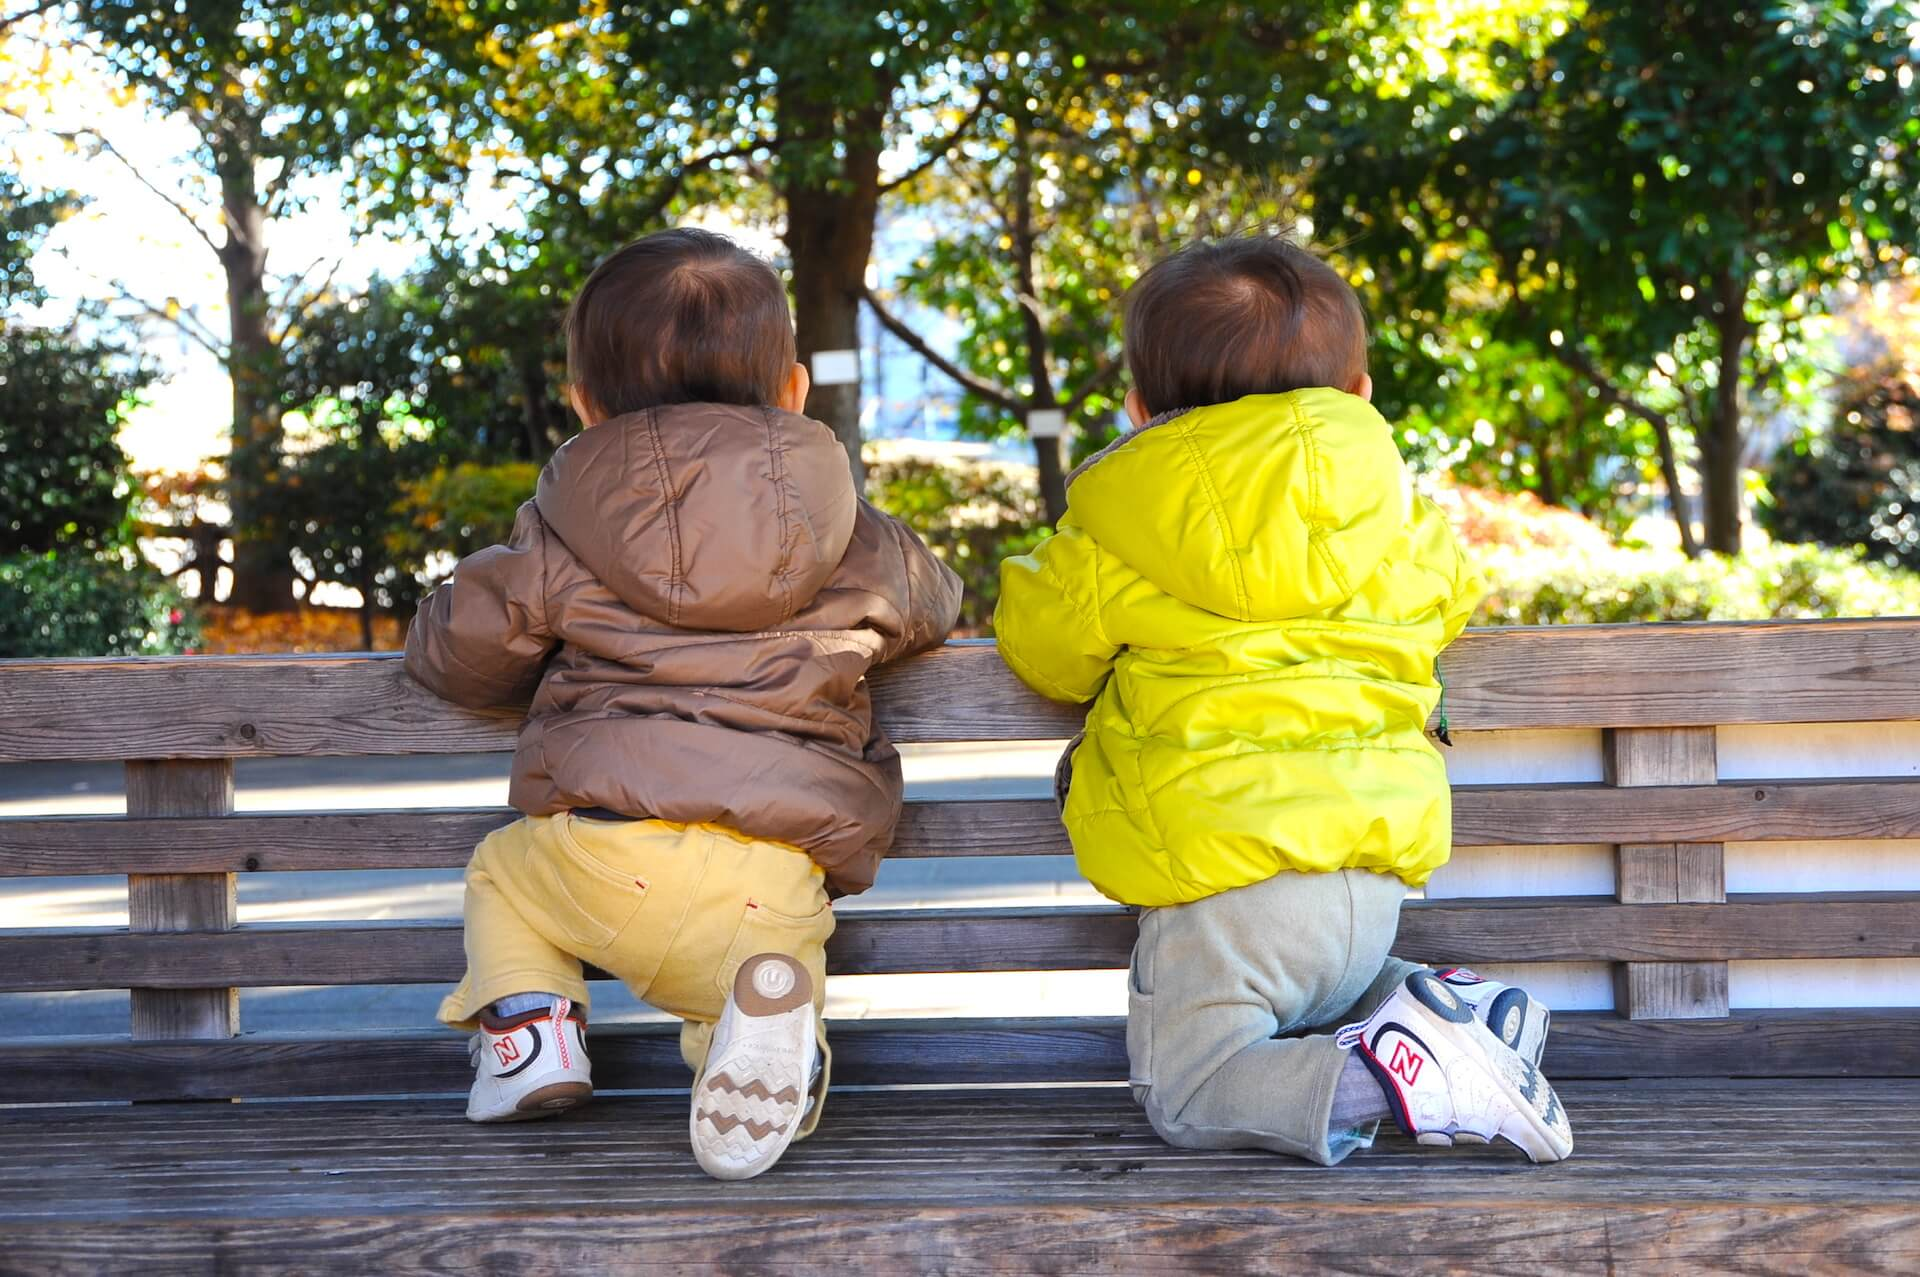 Twins Looking Bench